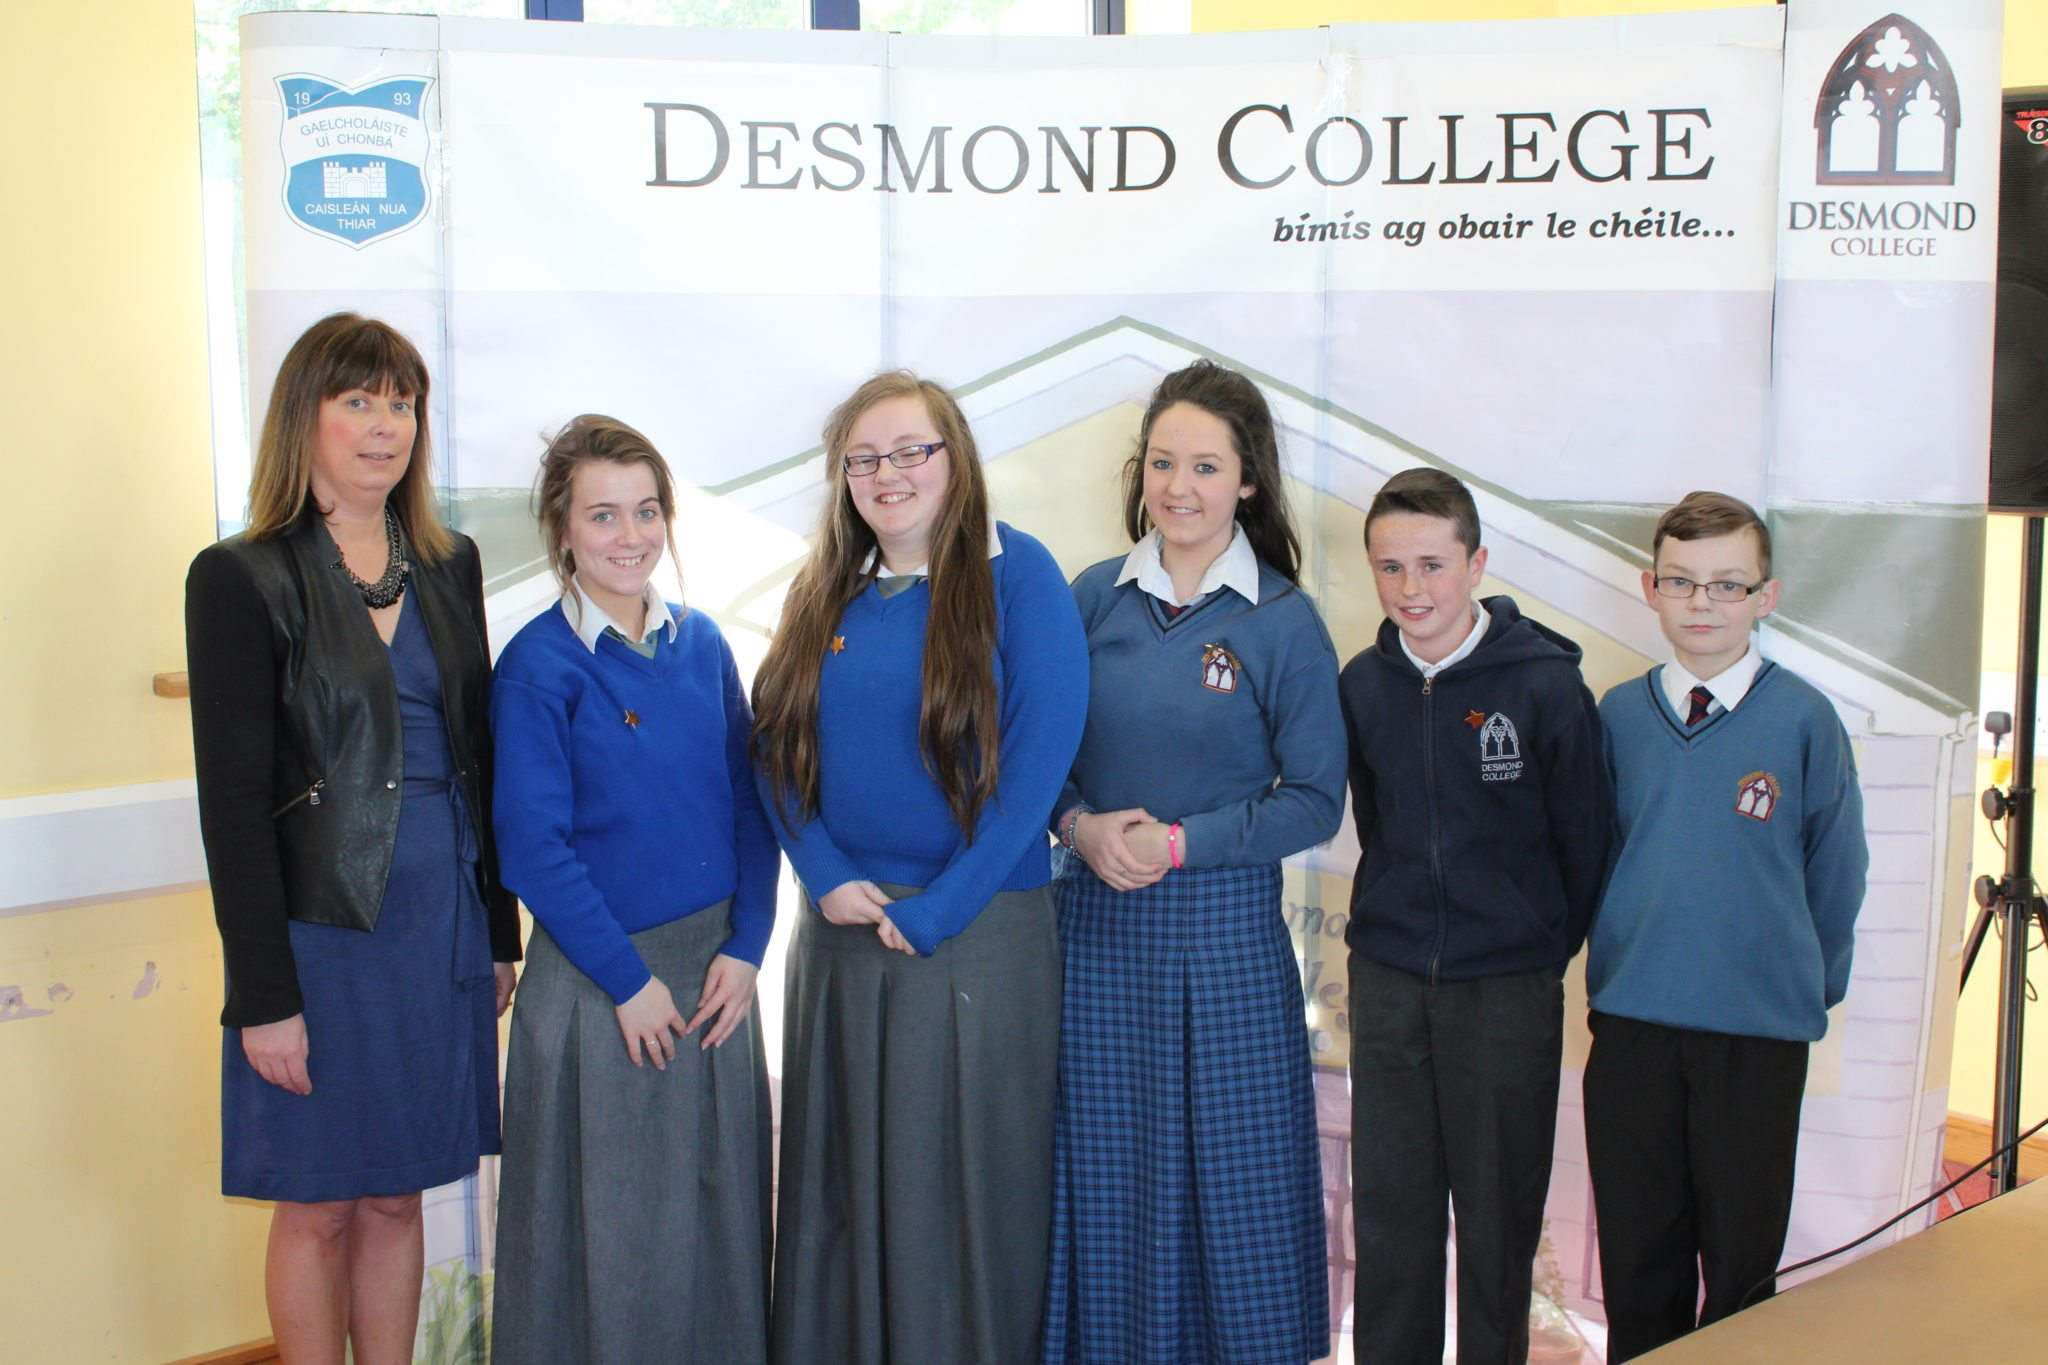 Desmond College Student Awards: May 2015: CO-OPERATION AND DILIGENCE AWARDS : 2nd year : Ms. Cregan with Rhea Crowley, Leona Mulally, Lucy Quilligan, Jack Enright and Tony O'Sullivan